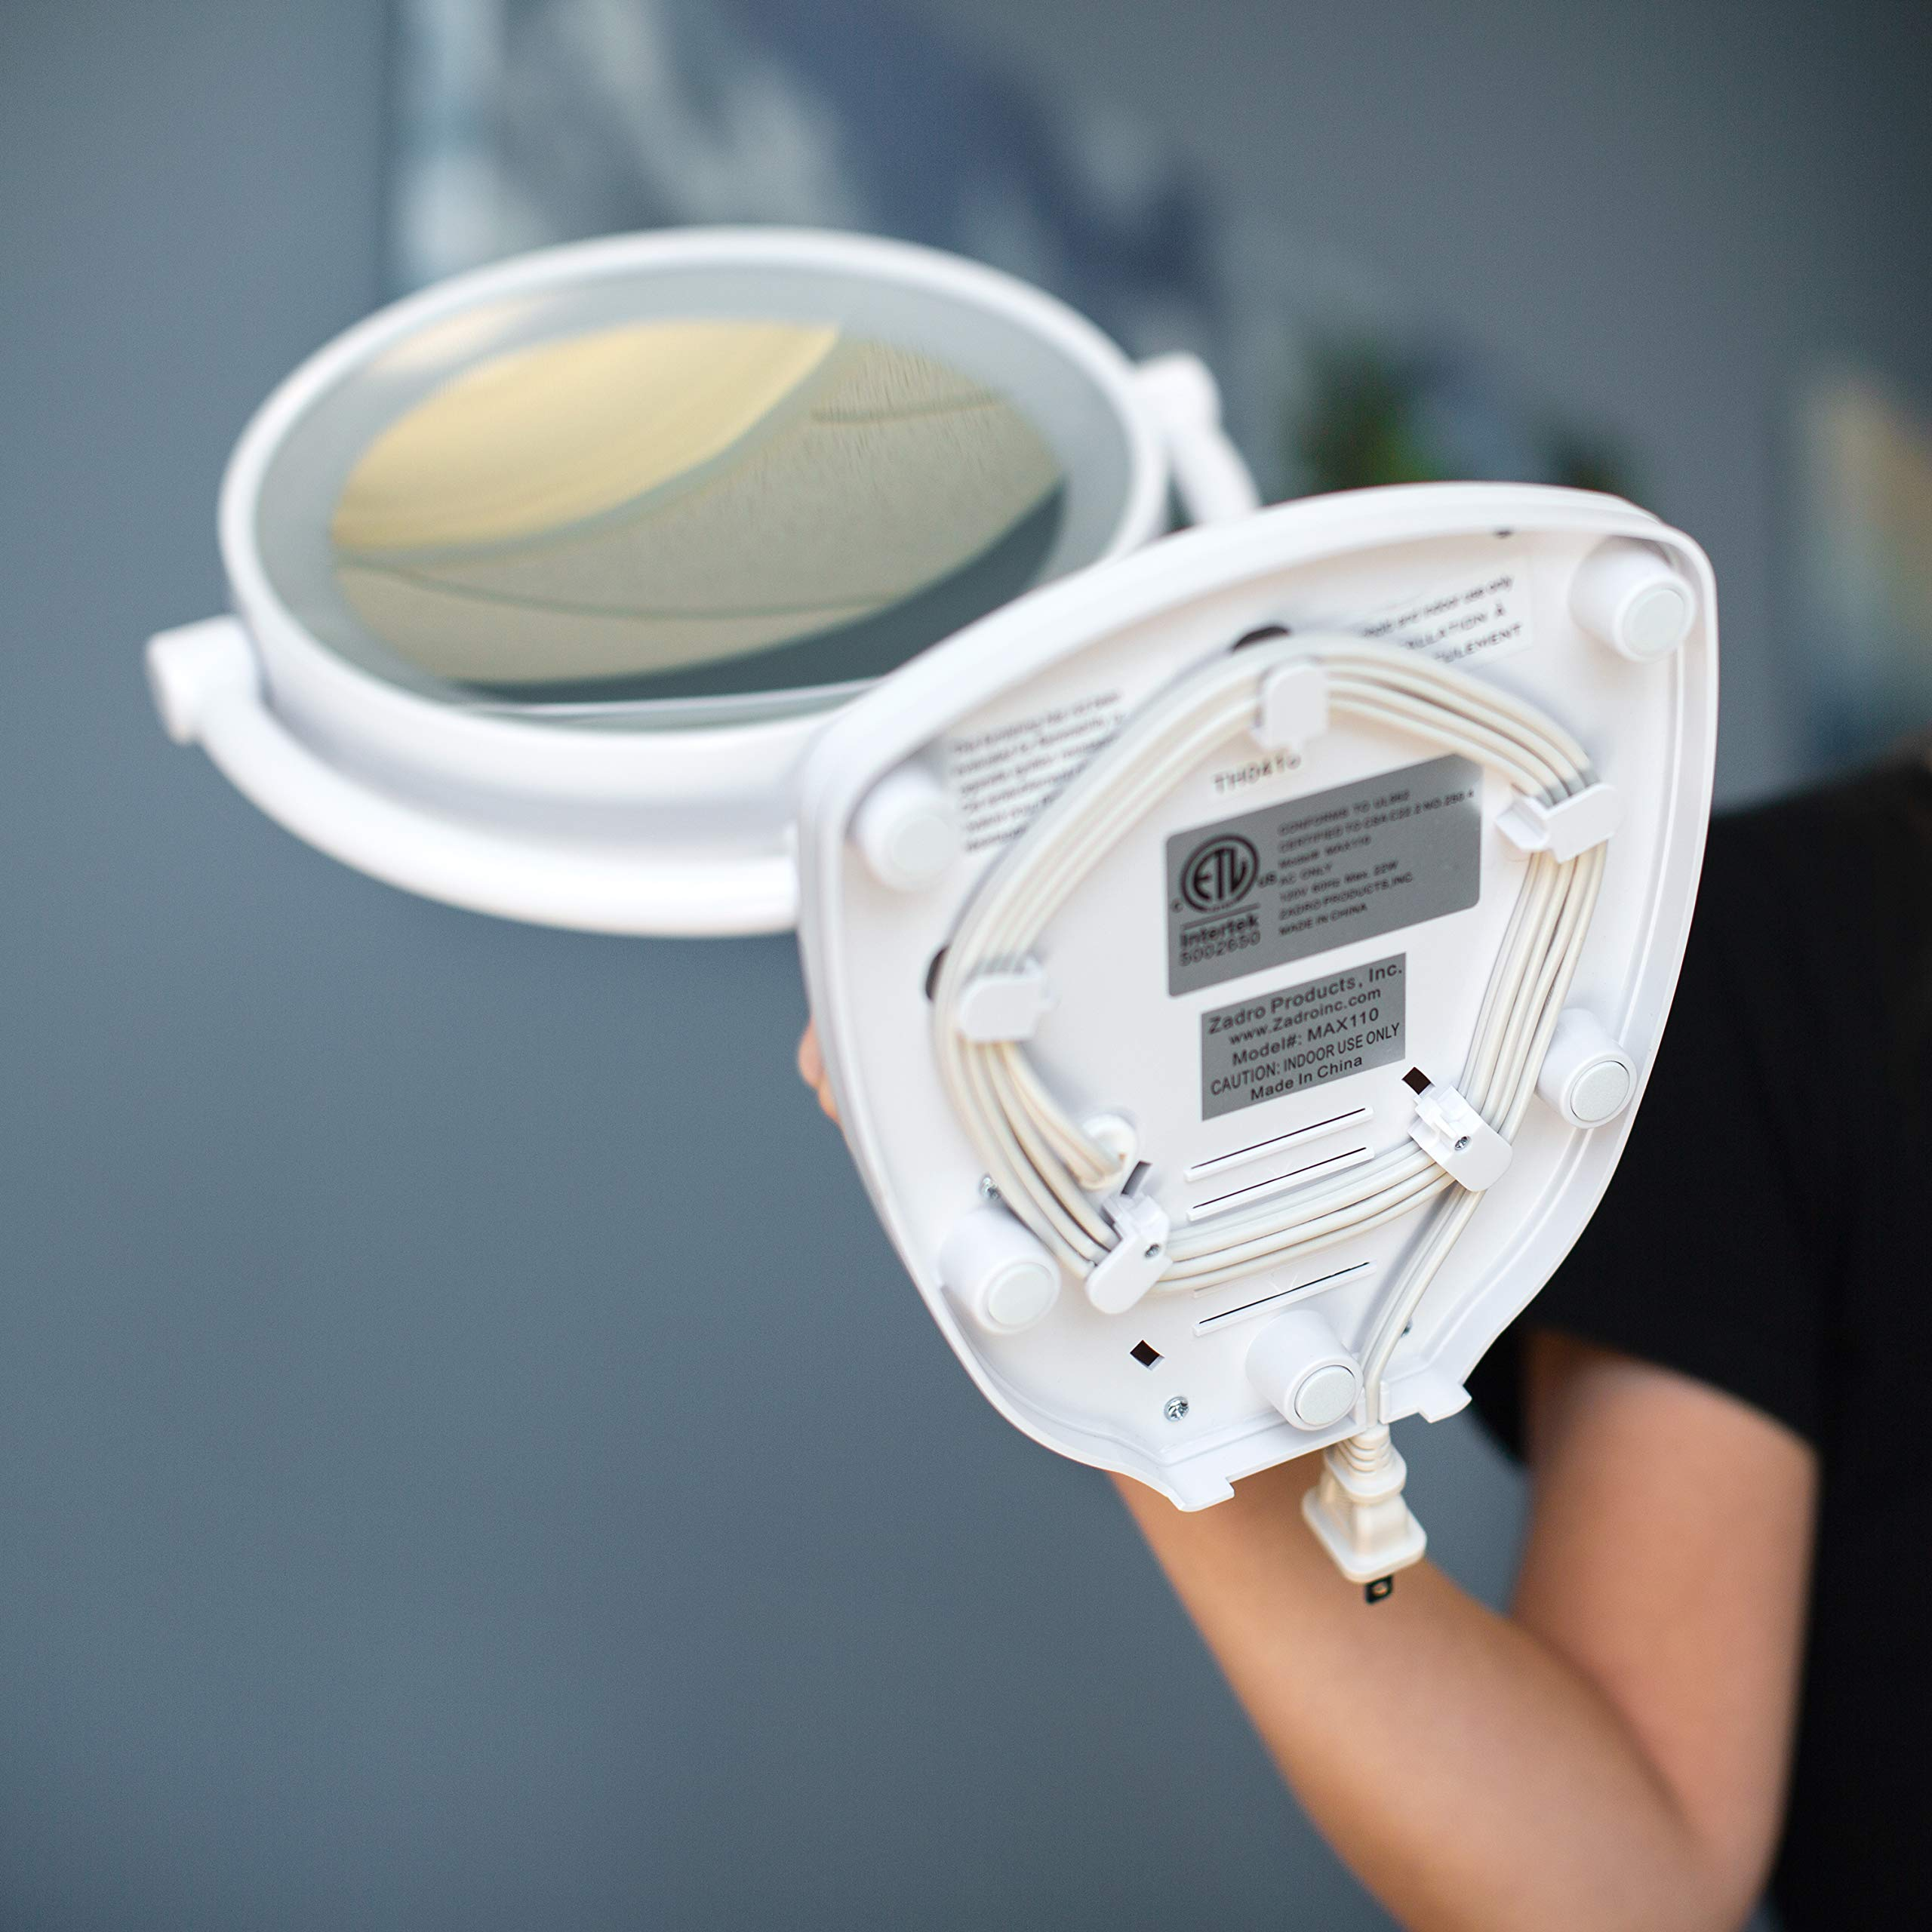 Zadro Max Bright Sunlight Dual Sided Vanity Mirror, White, 10X/1X Magnification by Zadro (Image #5)